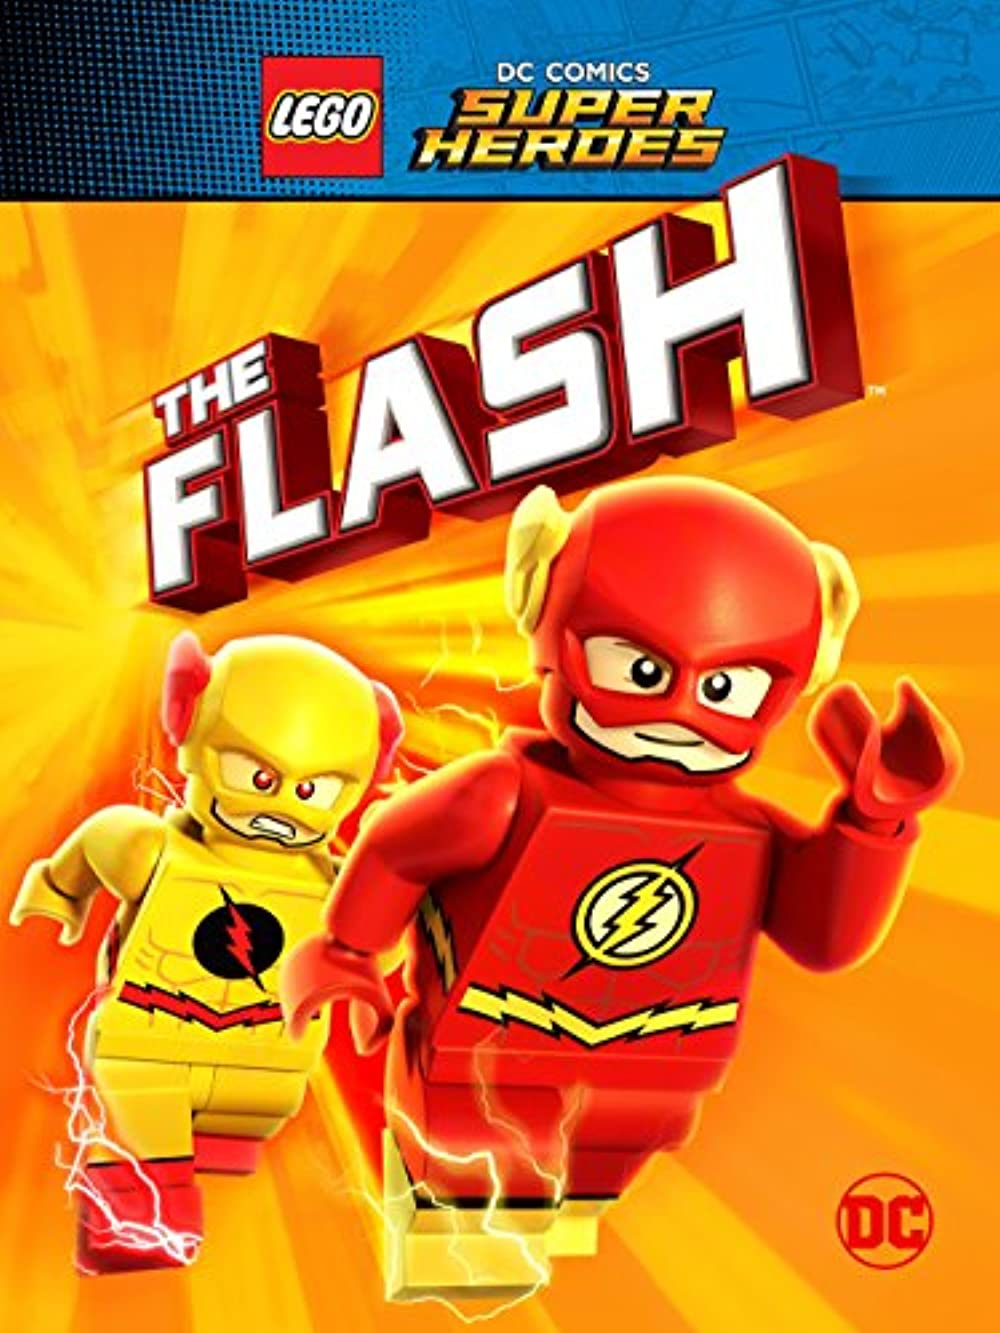 Lego DC Comics Super Heroes: The Flash poster